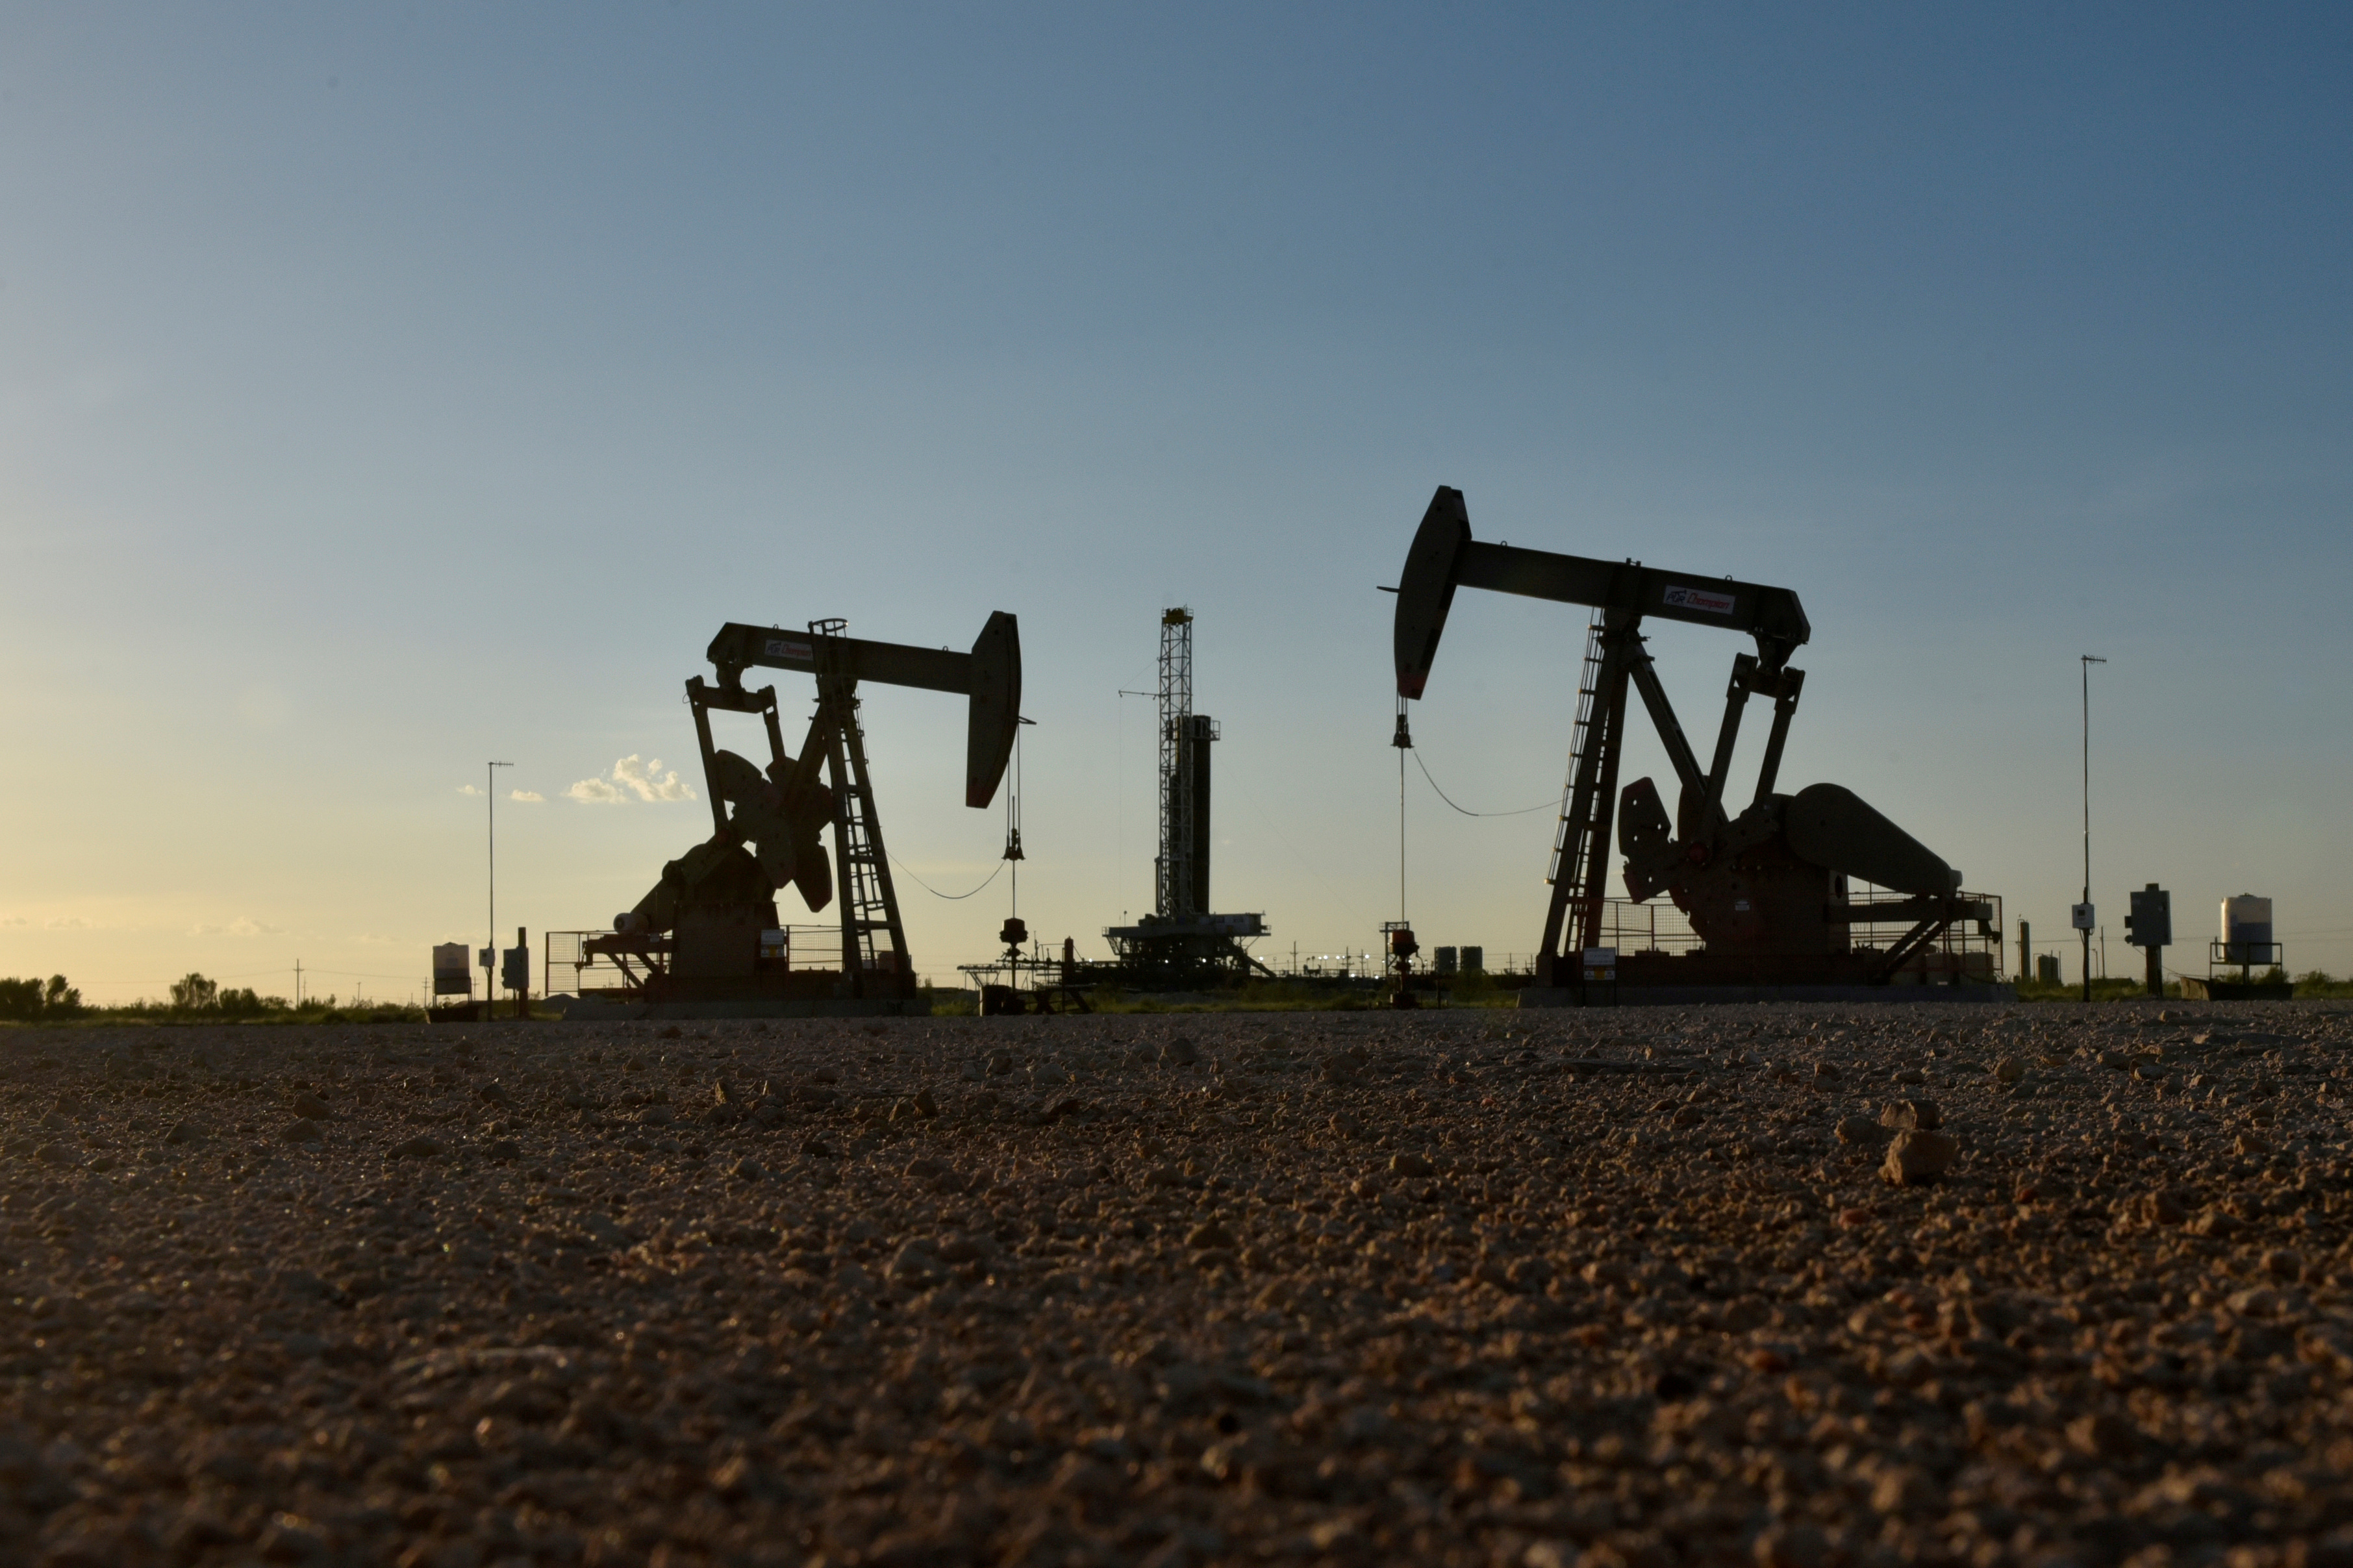 Pump jacks operate in front of a drilling rig in an oil field in Midland, Texas U.S. August 22, 2018. REUTERS/Nick Oxford/File Photo